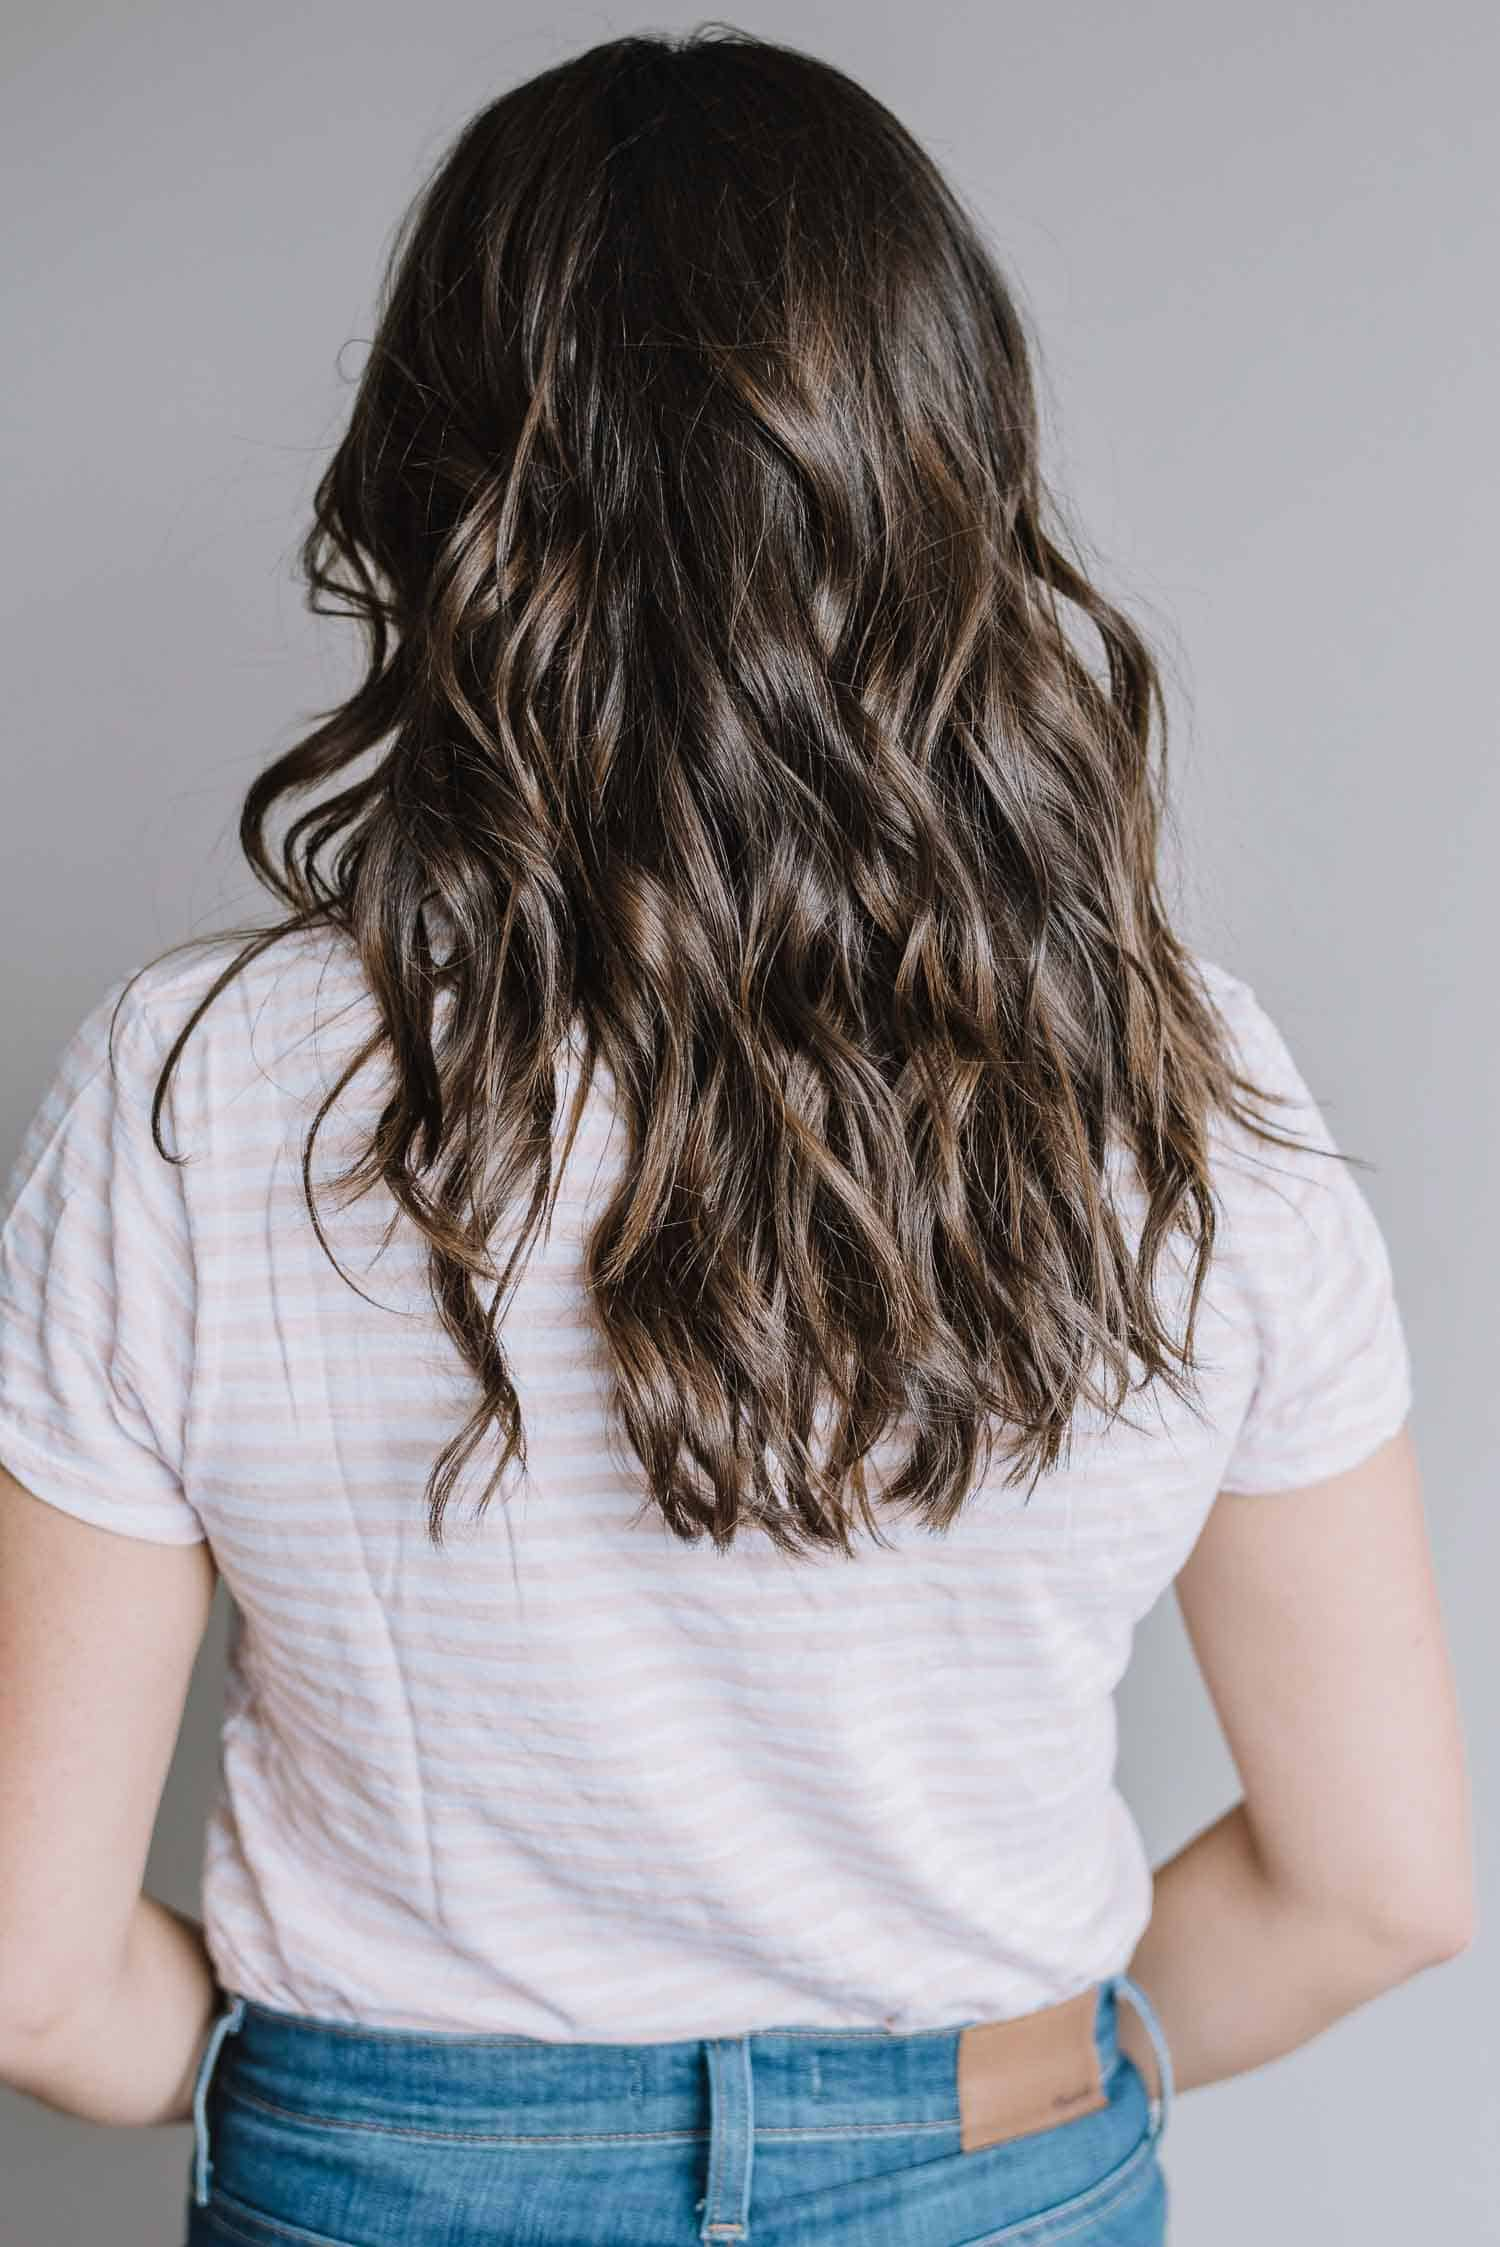 loose waves, beachy waves, balayage, what to ask for at the hair salon - My Style Vita